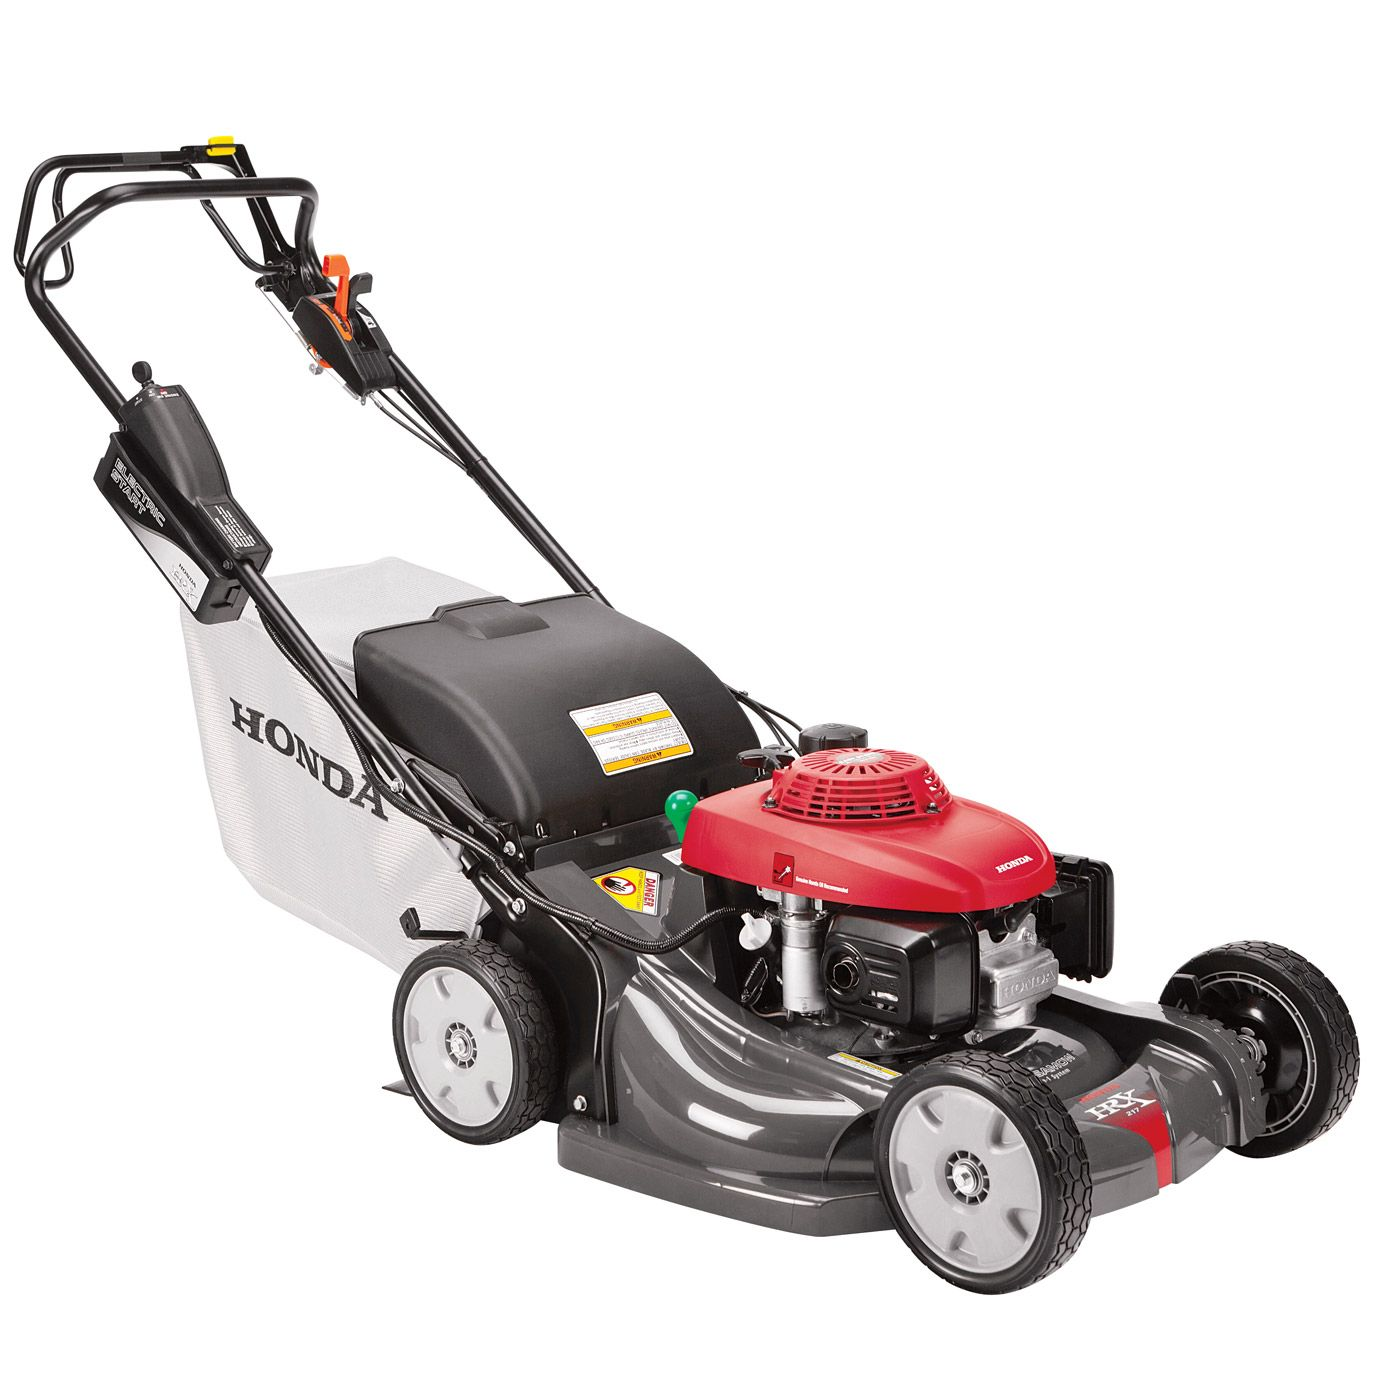 Elegant Home Depot Honda Lawn Mowers Prices Insured By